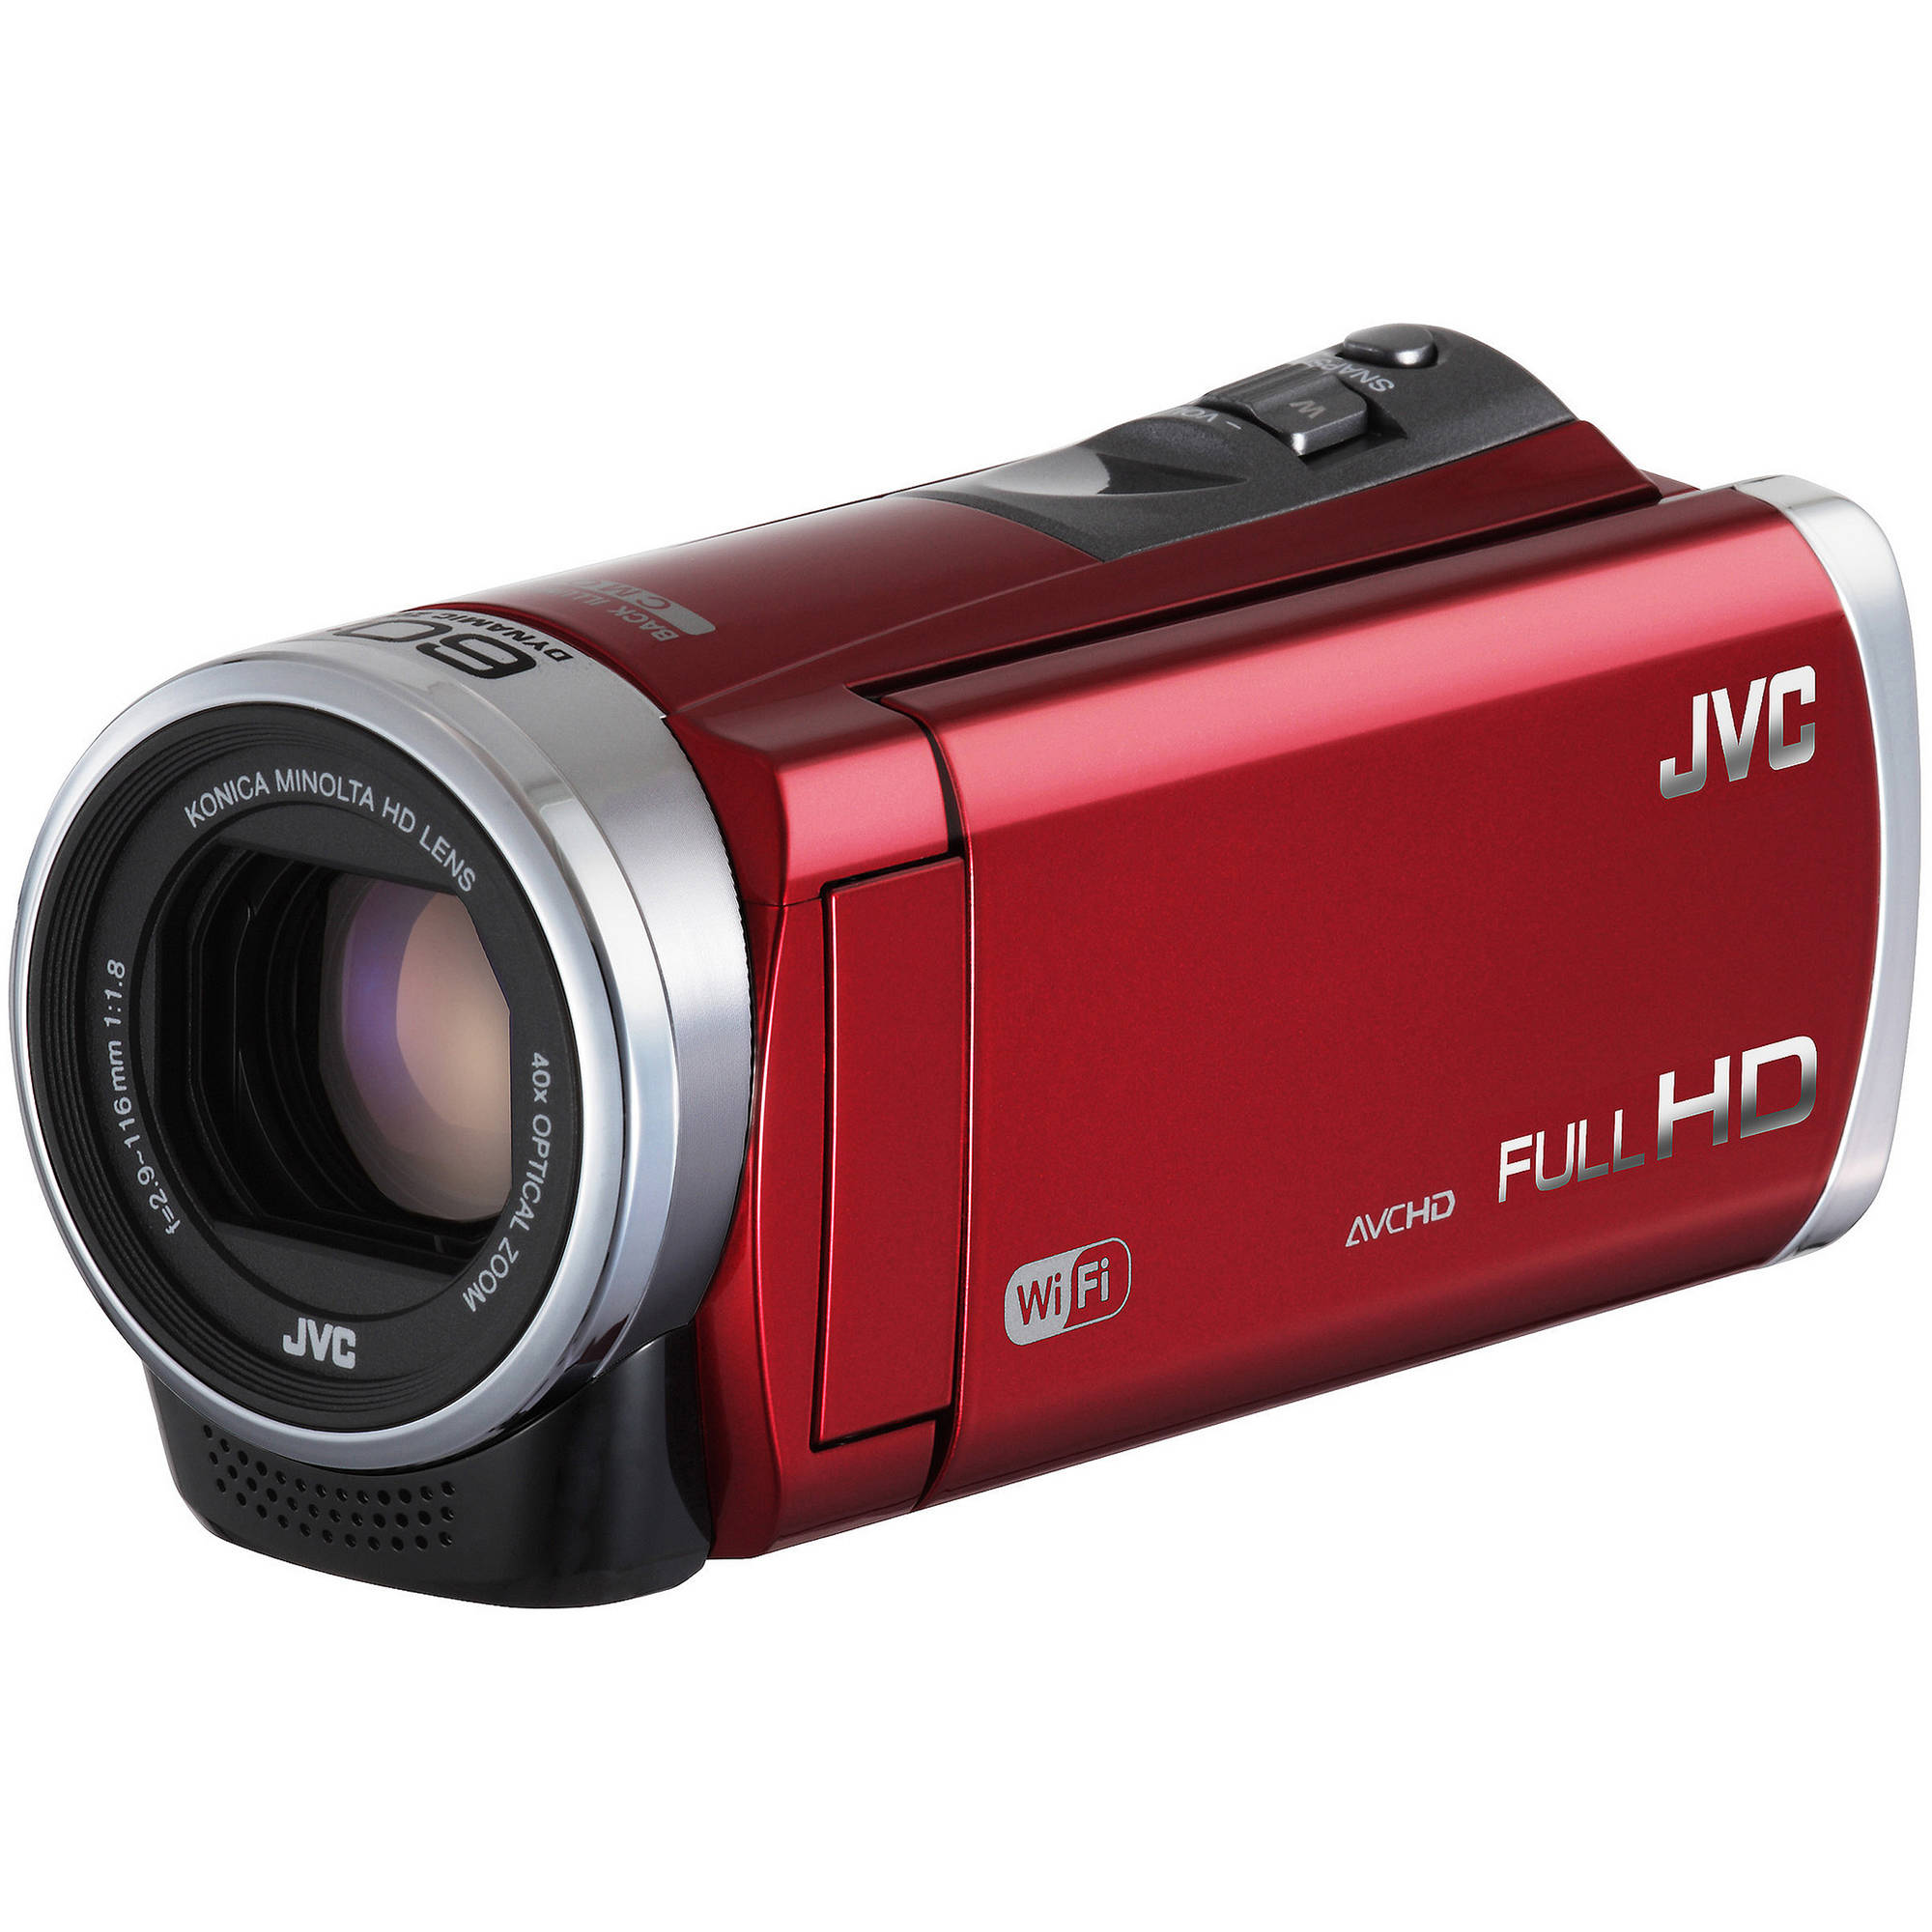 jvc gz ex310 full hd everio camcorder red b h photo video. Black Bedroom Furniture Sets. Home Design Ideas